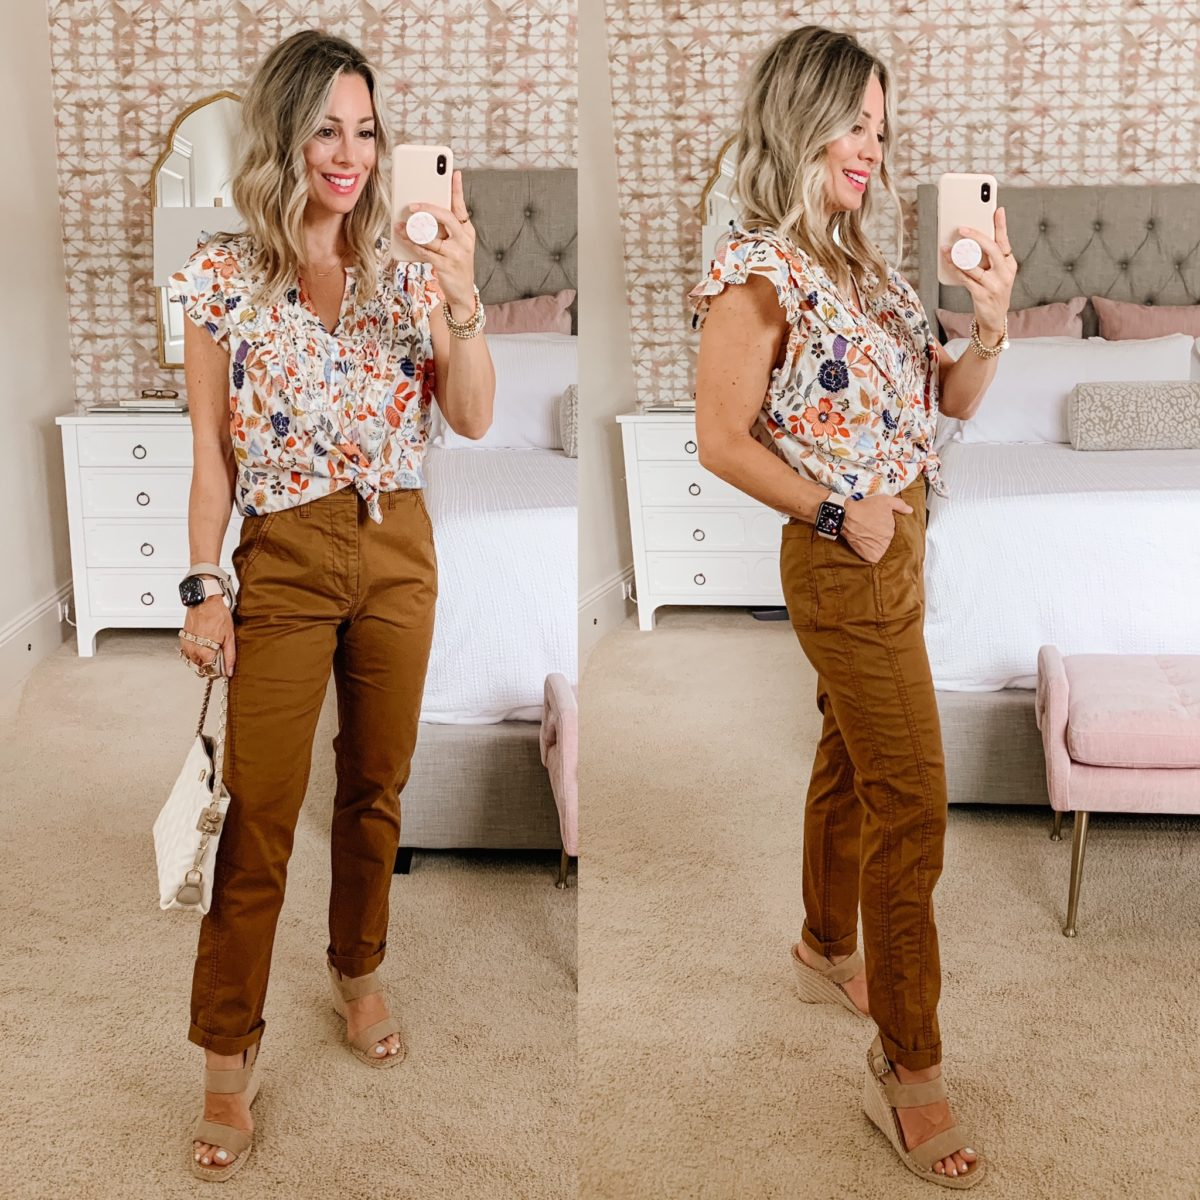 Old Navy Fashion, Floral Top, Brown Pants, Wedges, Crossbody